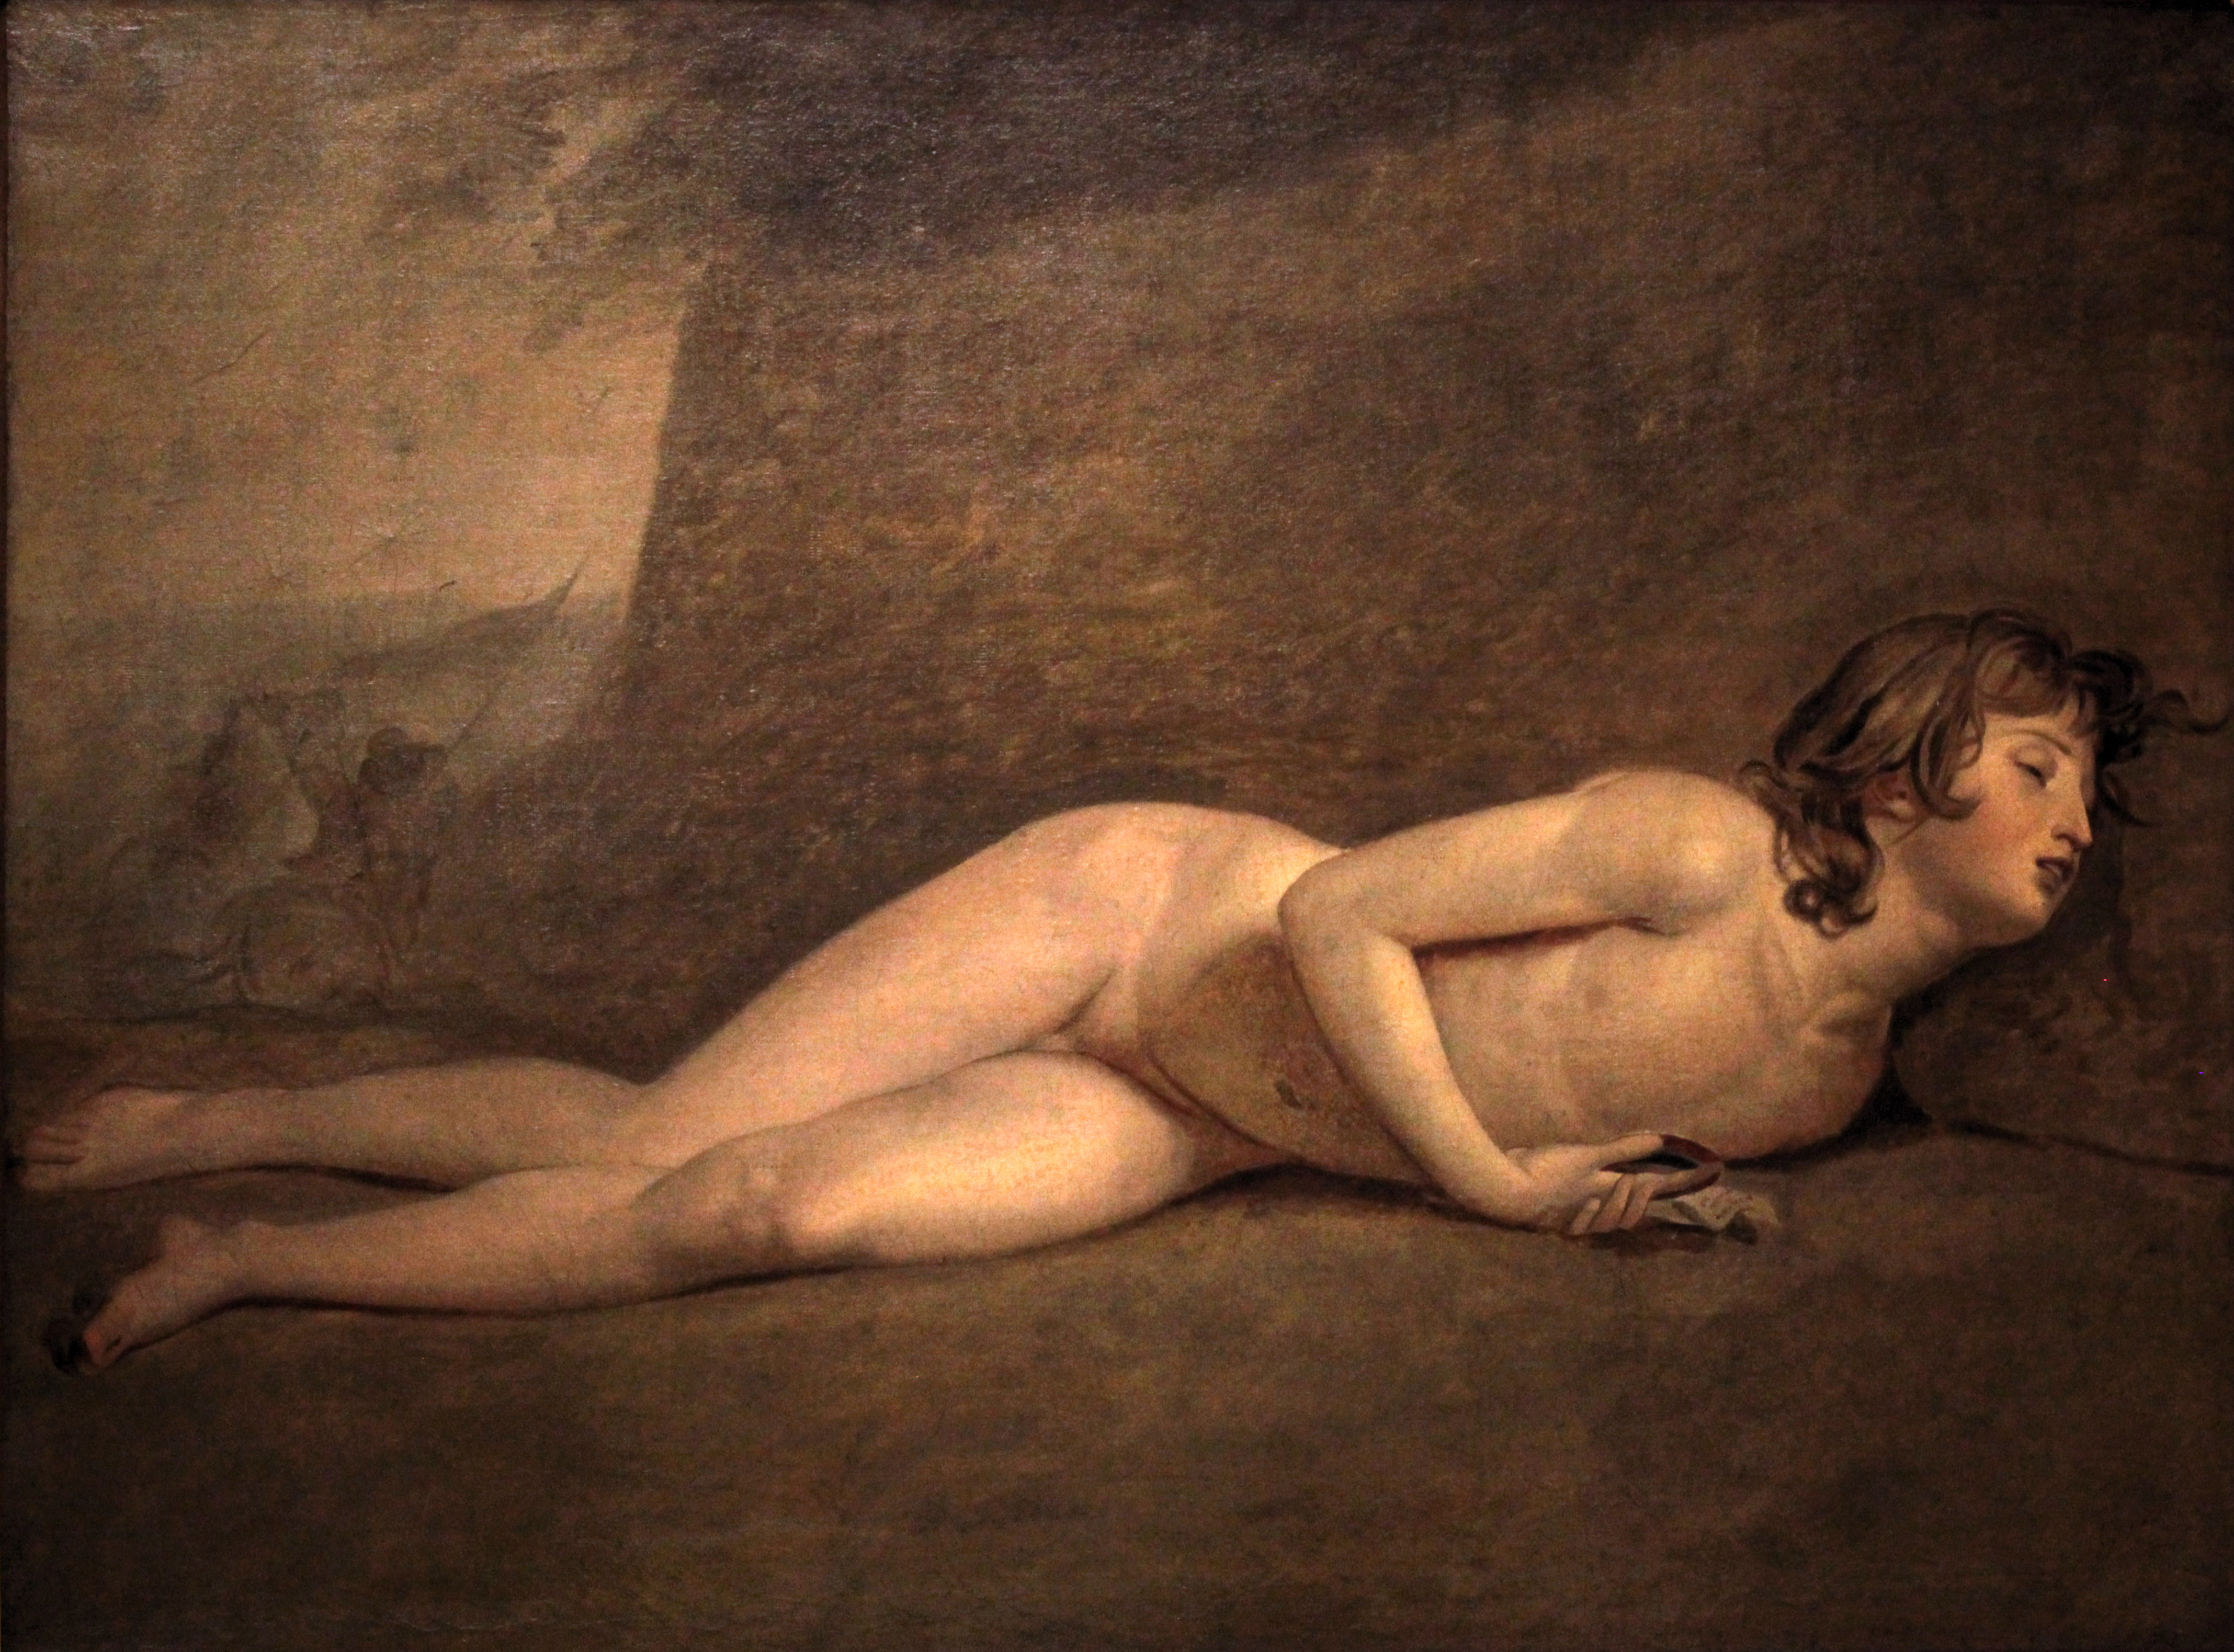 Figura 13 - Jacques-Louis David, A morte do jovem Bara